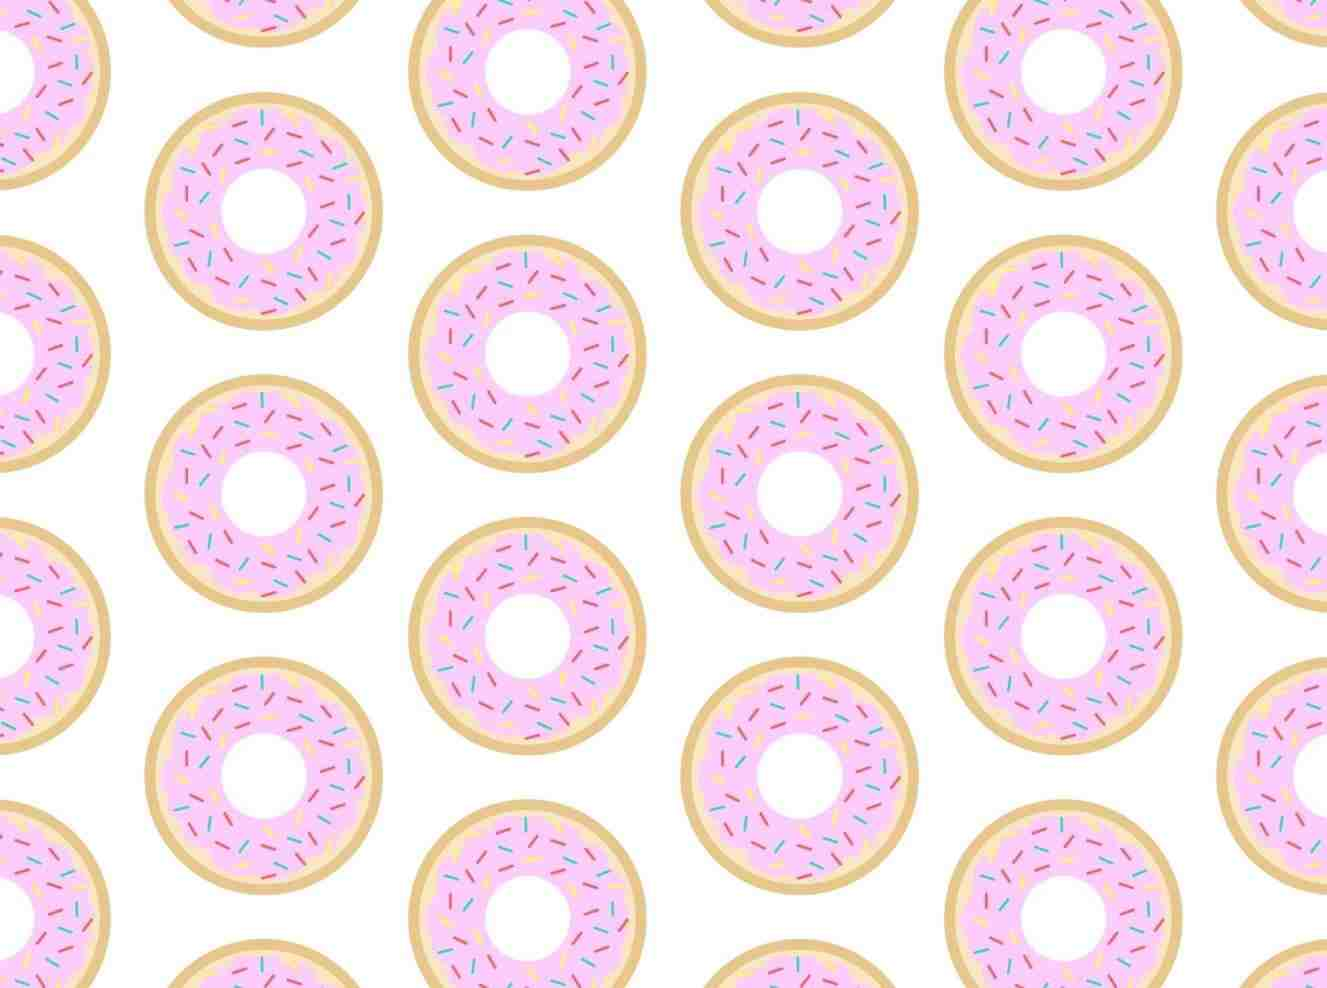 Cute Donut Wallpapers Top Free Cute Donut Backgrounds